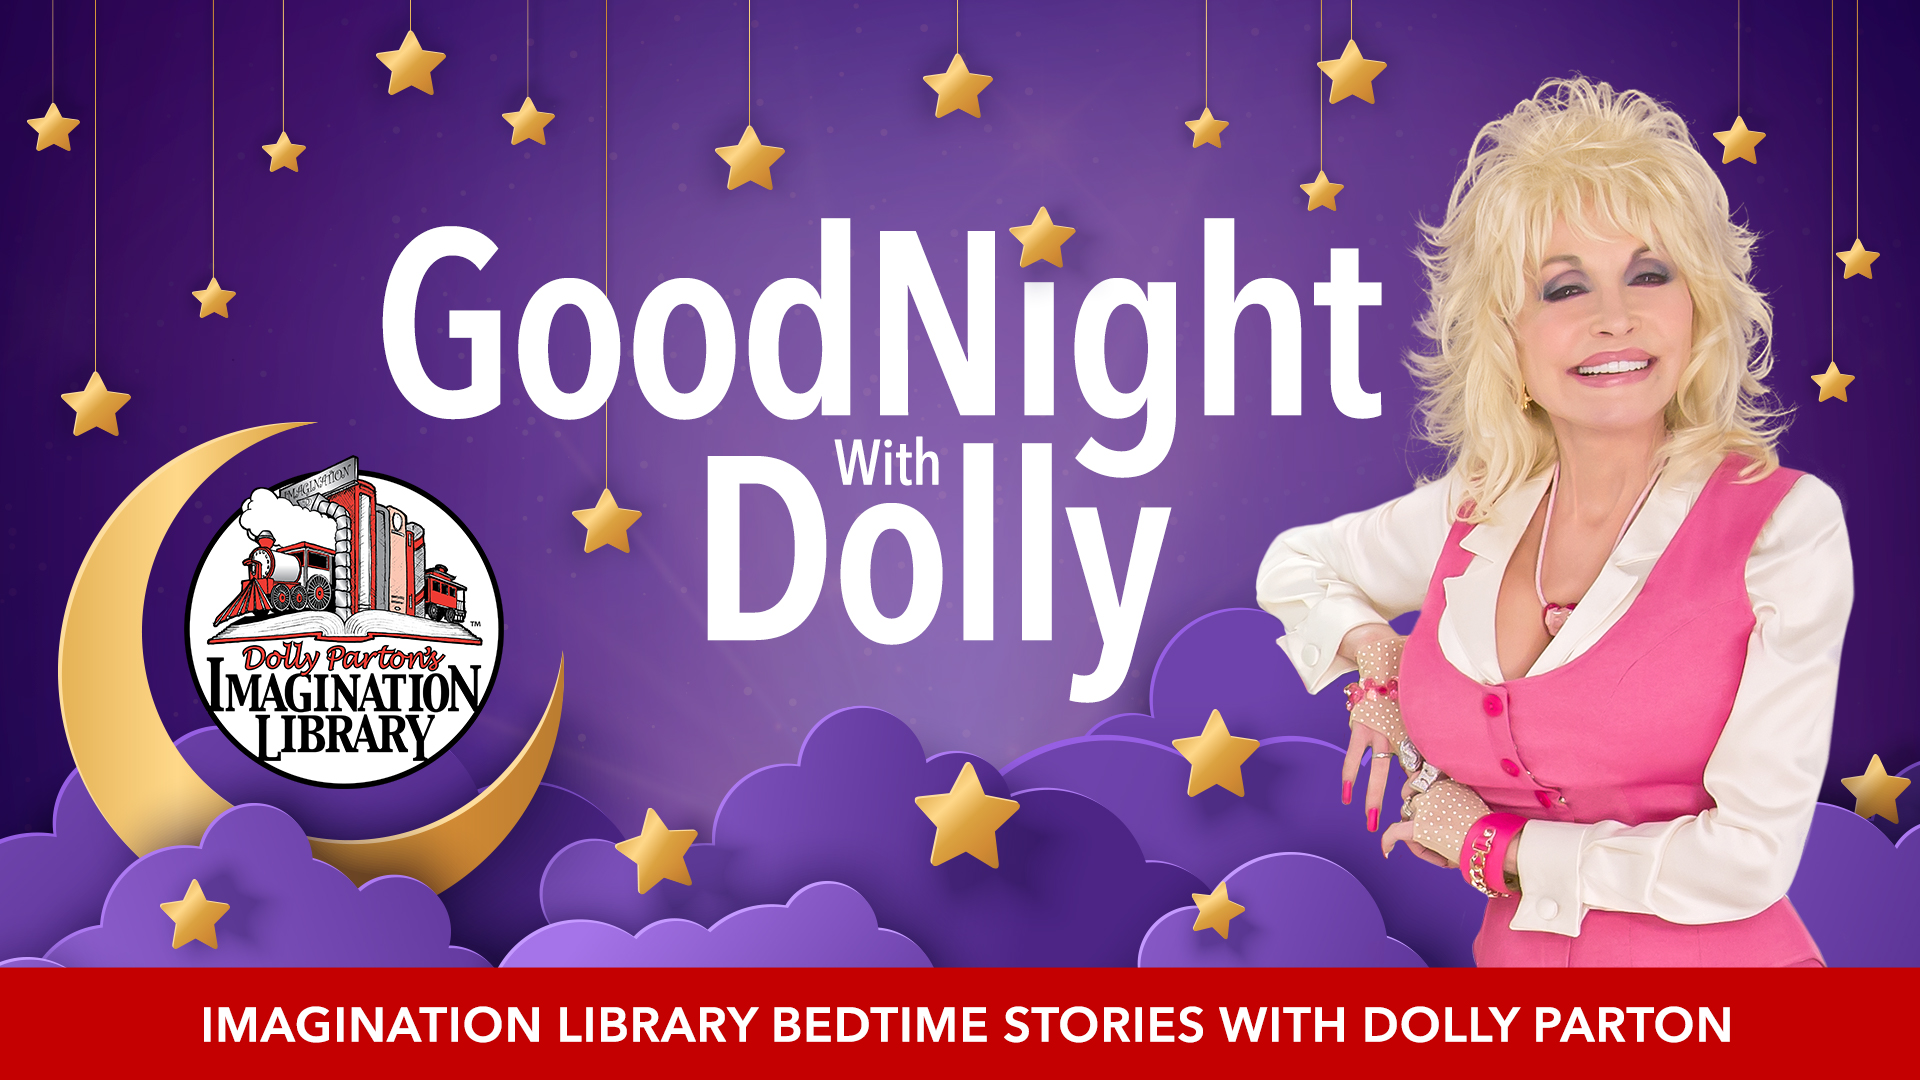 Goodnight with Dolly - Dolly Parton's Imagination Library